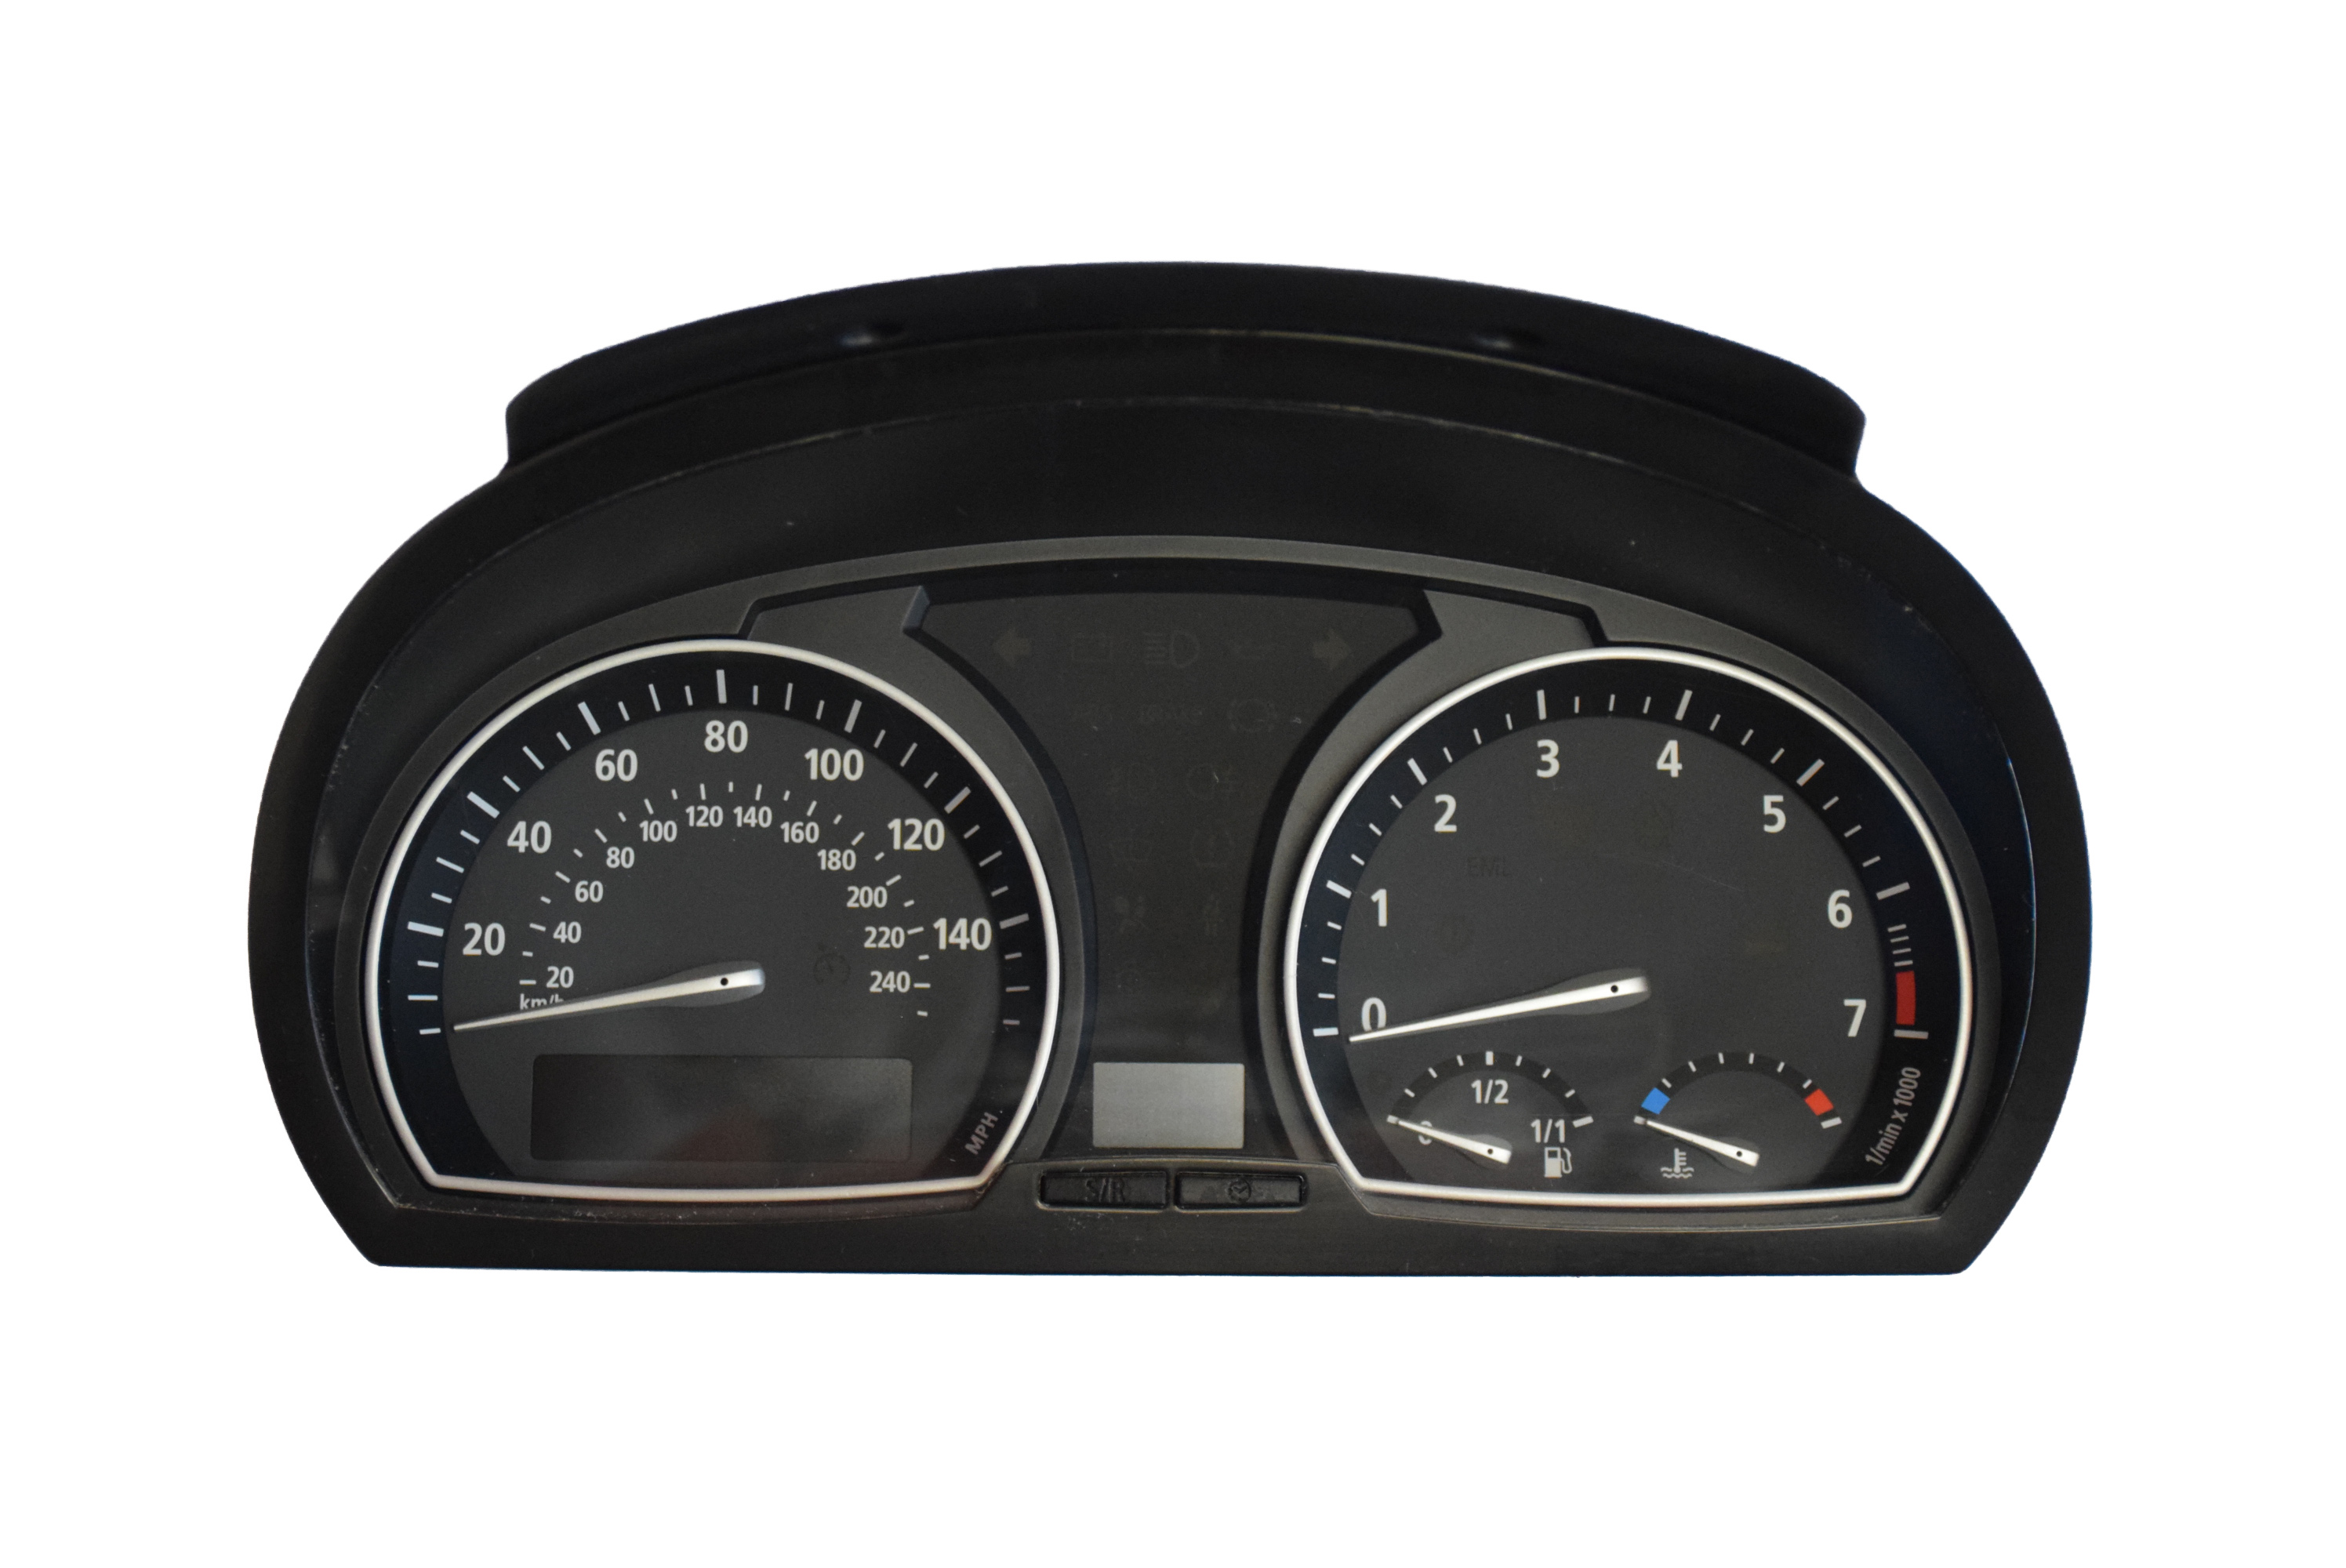 e38 seat wiring diagram for ring main service manual [2004 bmw 545 cluster ligth repair] - 2004 545i speedo head ...